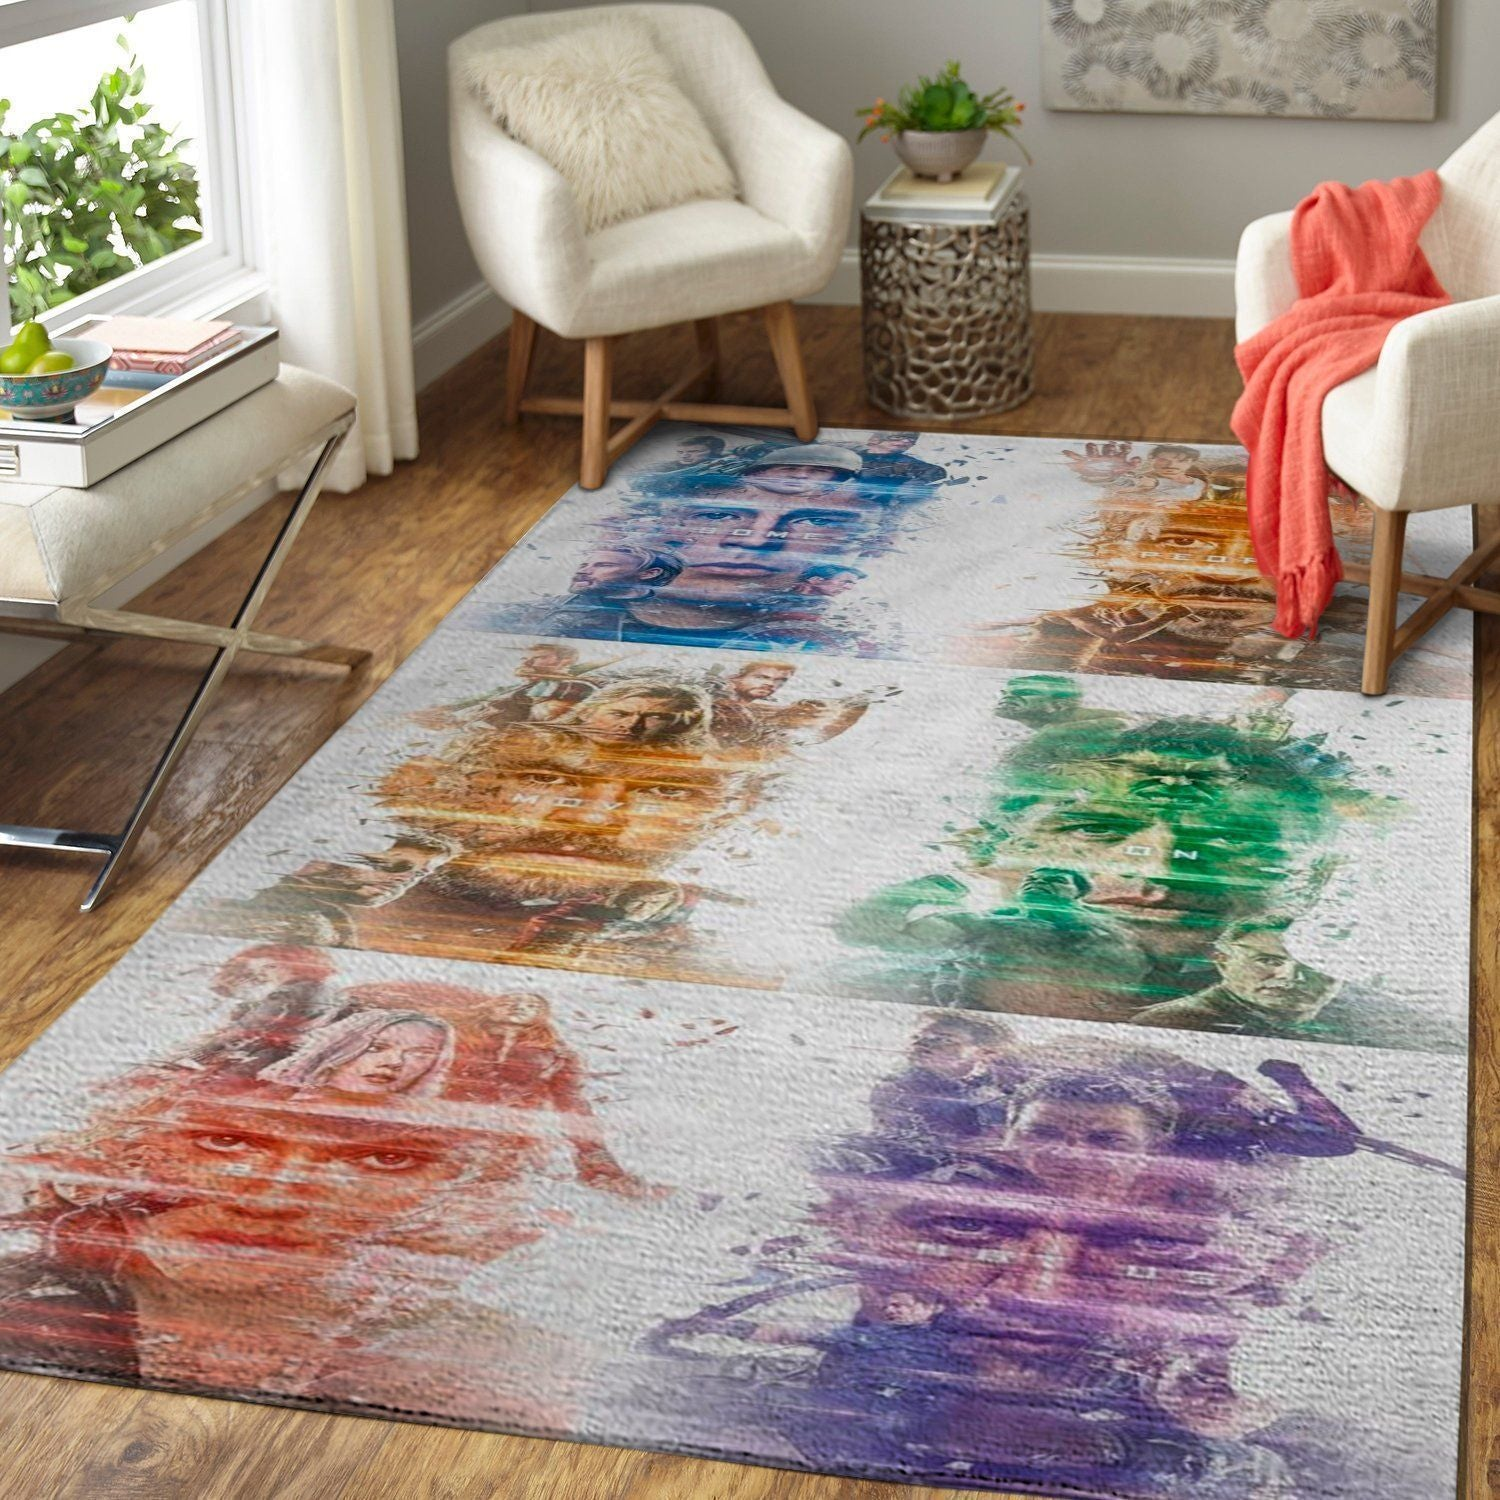 Marvel Superhero Area Rugs / Marvel Superhero Movie Living Room Carpet, Custom Floor Decor 01